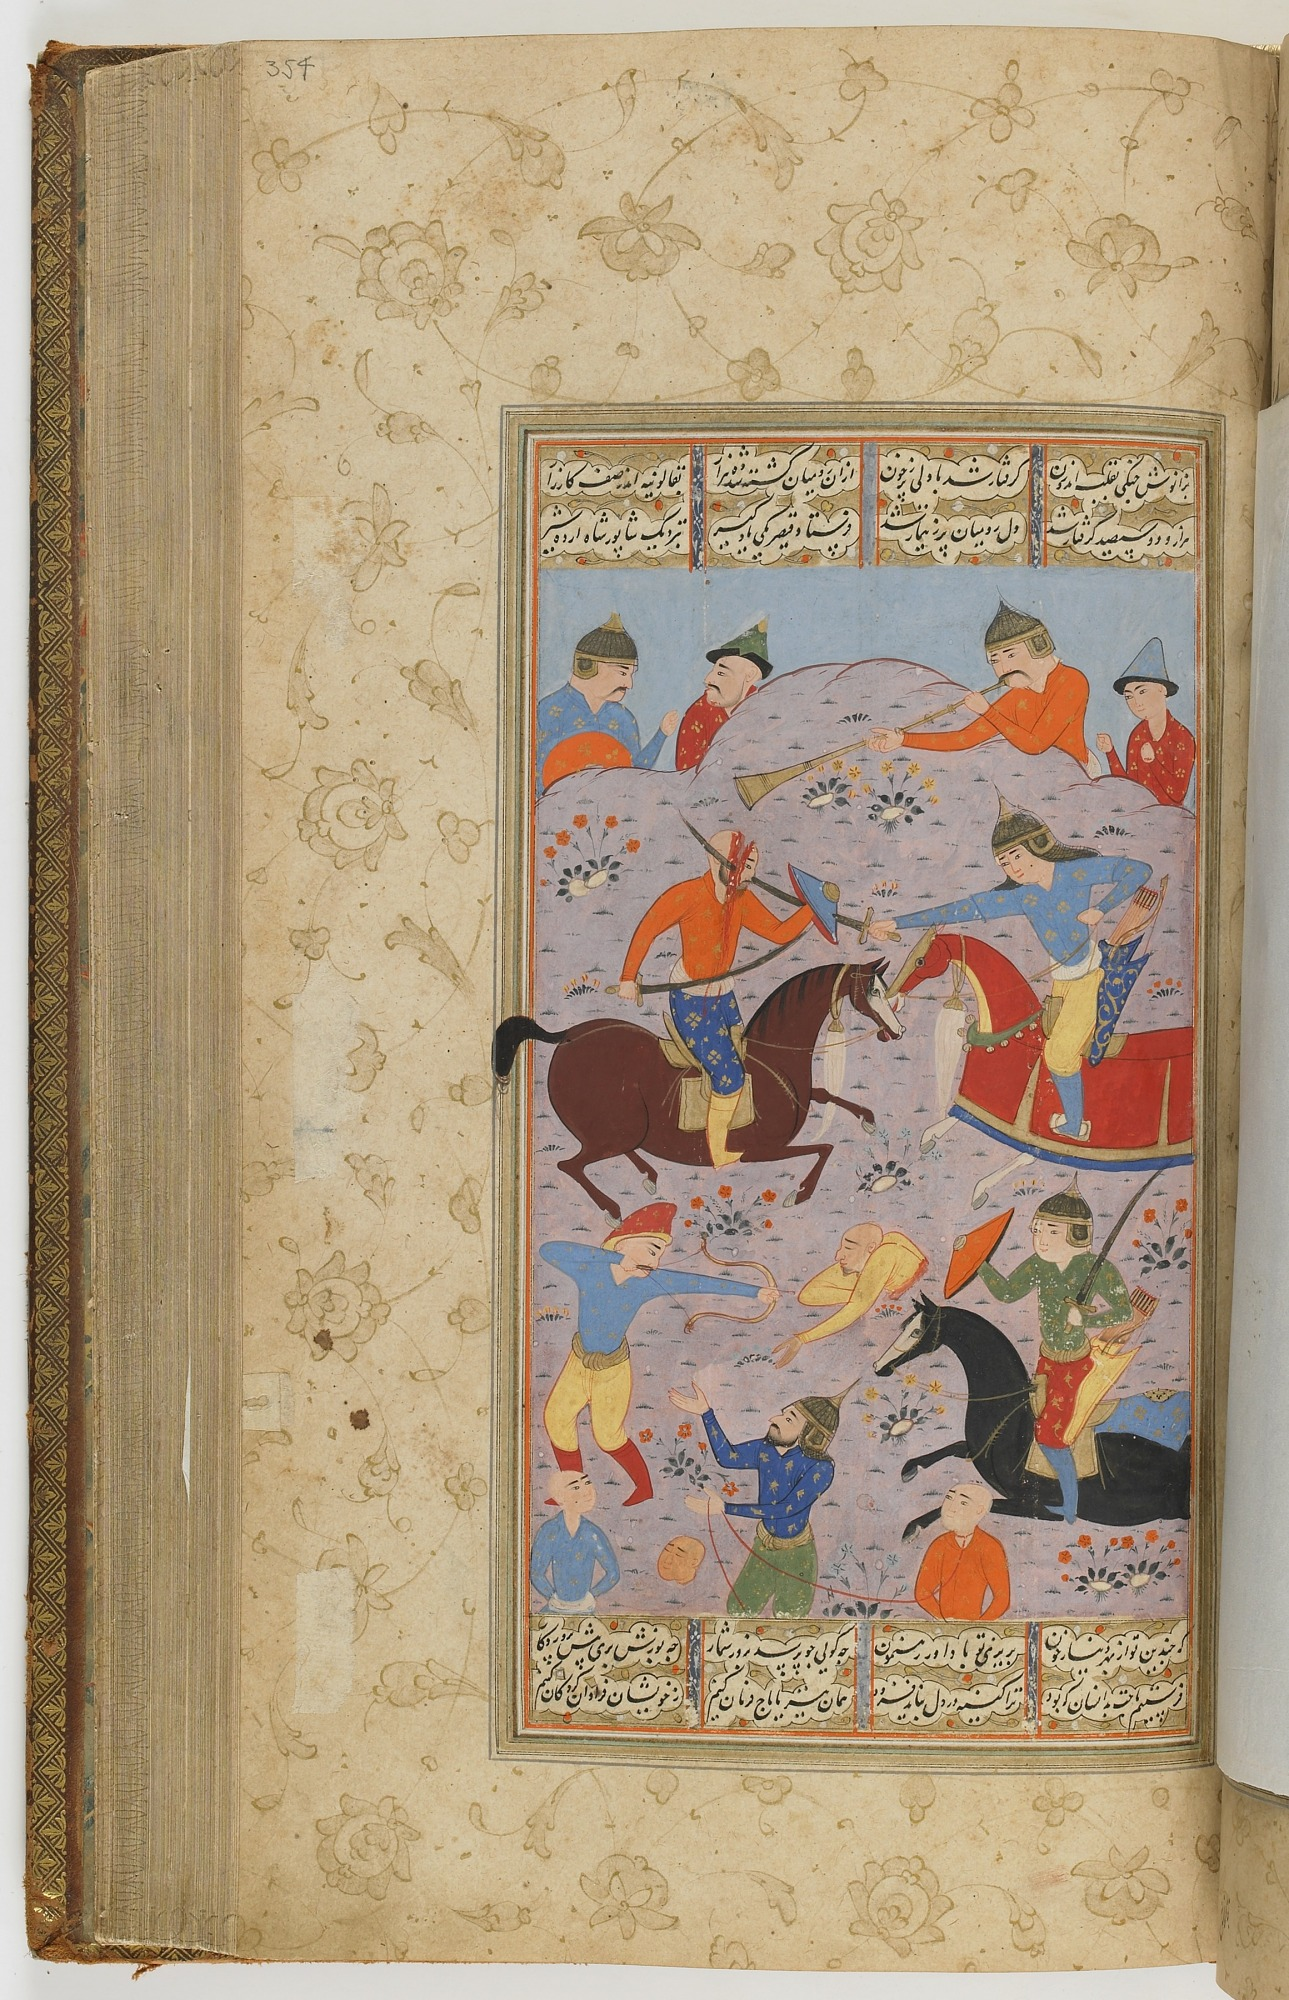 folio 354 recto: The Shahnama (Book of kings) by Firdausi (d. 1020)